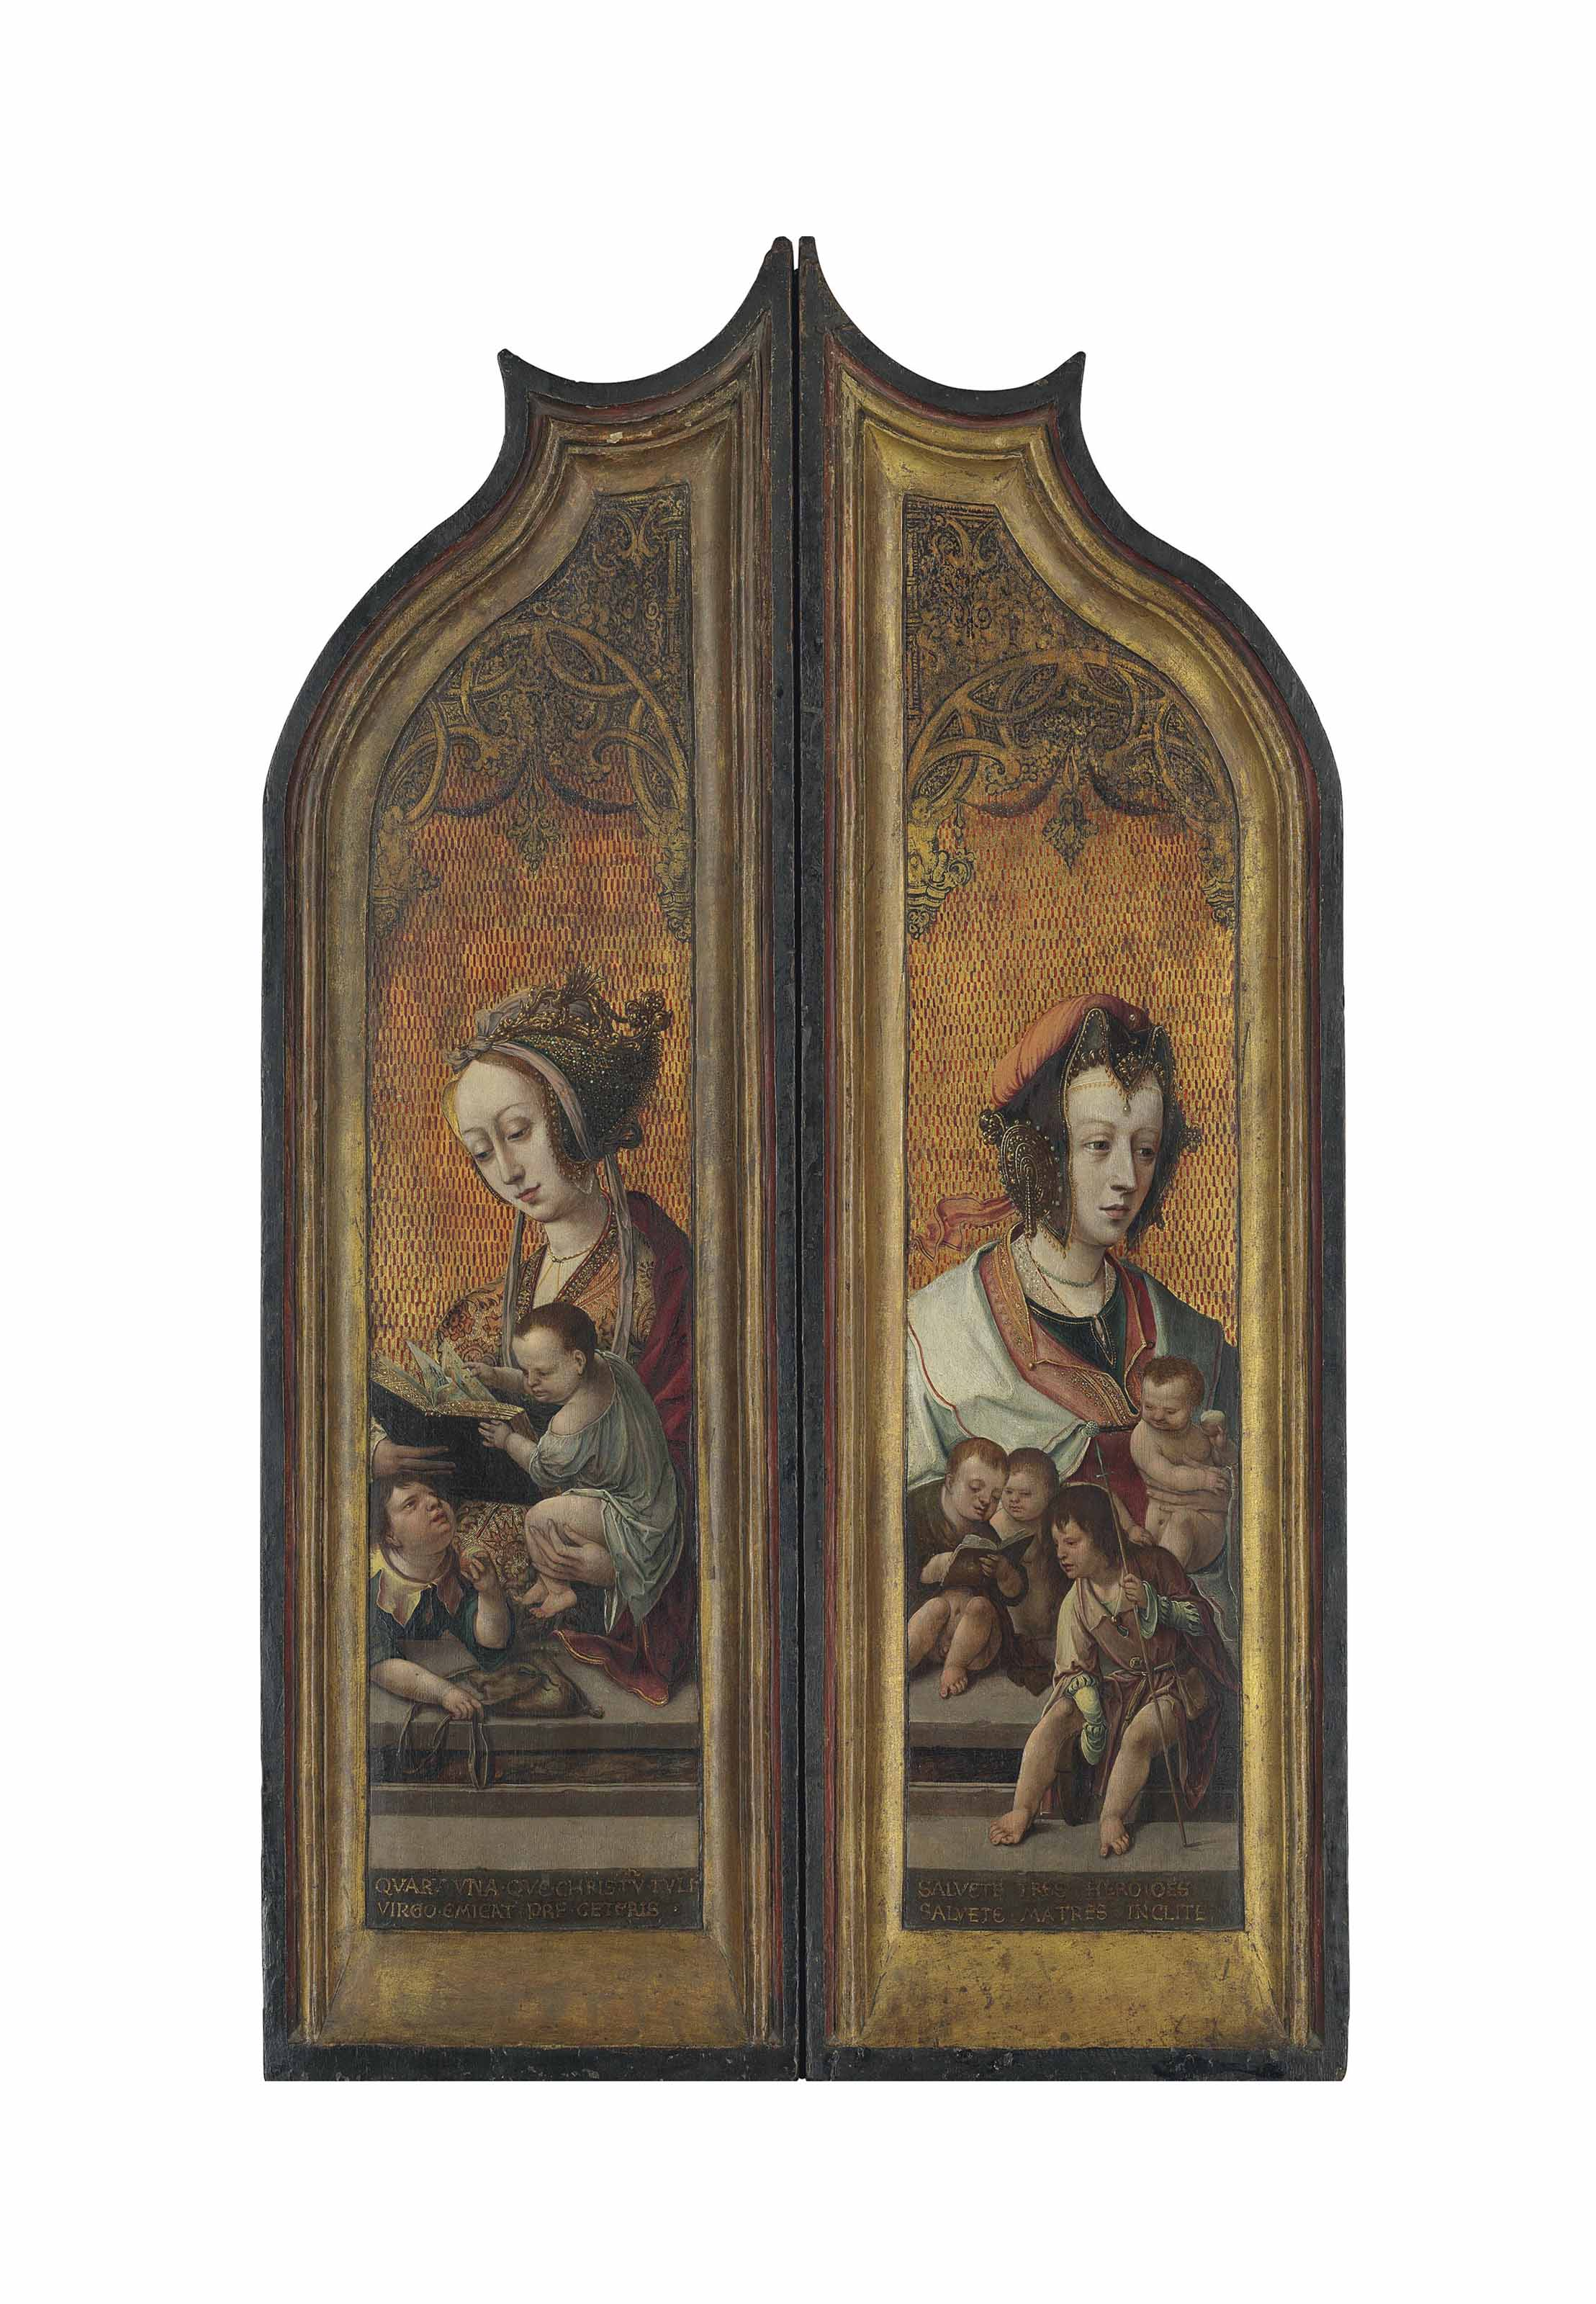 The wings of a triptych: verso: Mary Salome with the Infants Saint James the Greater and John the Evangelist; and Mary Cleophas with her four sons Saints James the Lesser, Joses, Jude and Simon; recto: Adam and Eve at the Tree of Wisdom